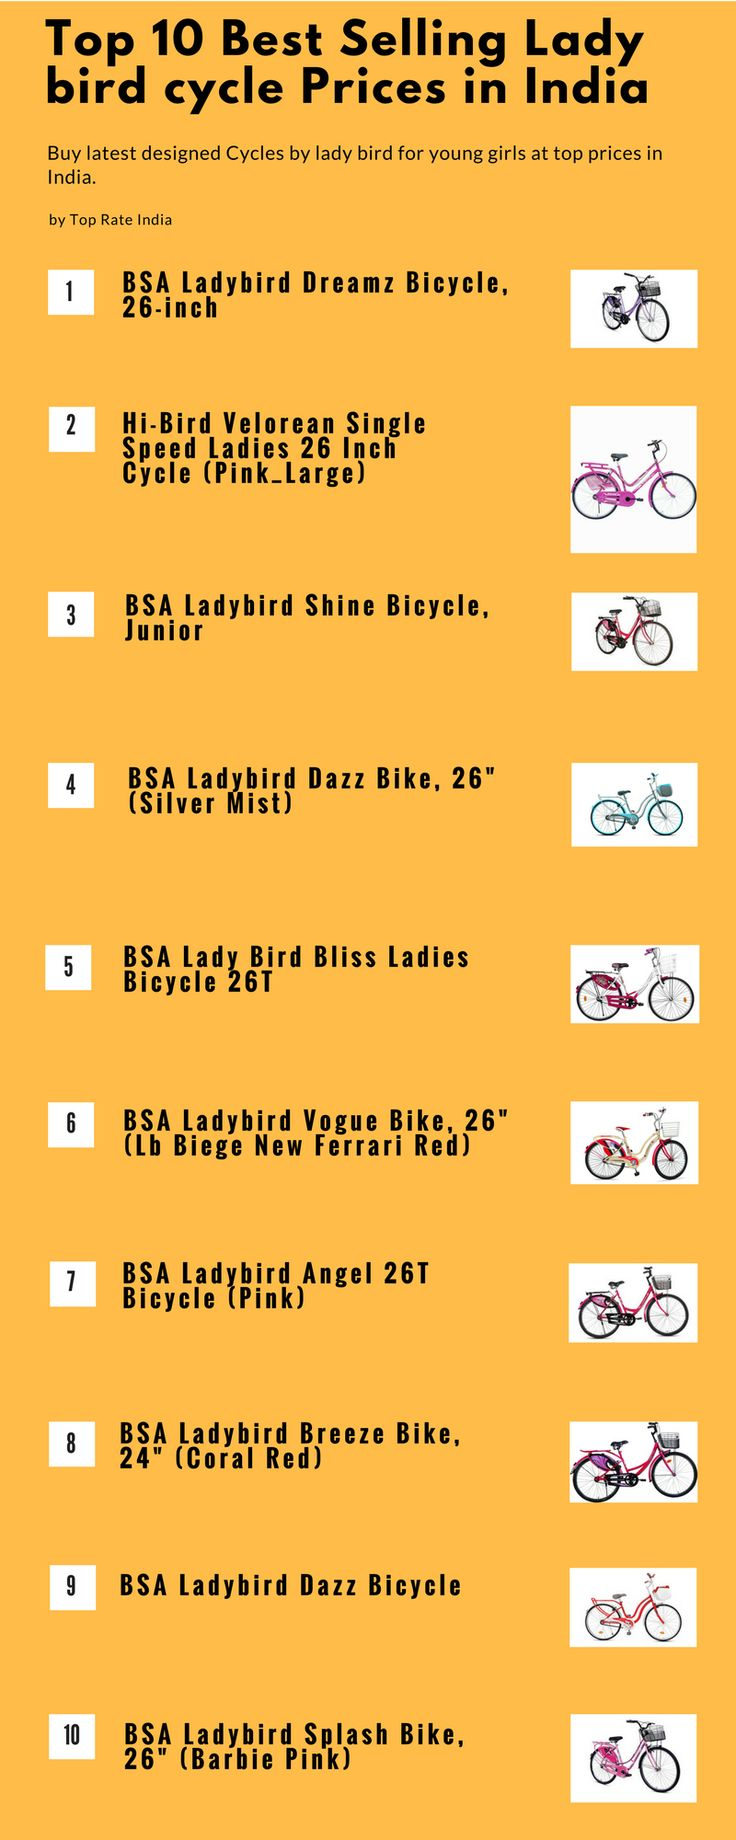 Buy latest designed Cycles by lady bird for young girls at top prices in India. For more visite our Website : http://toprateindia.com/lady-bird-cycle/